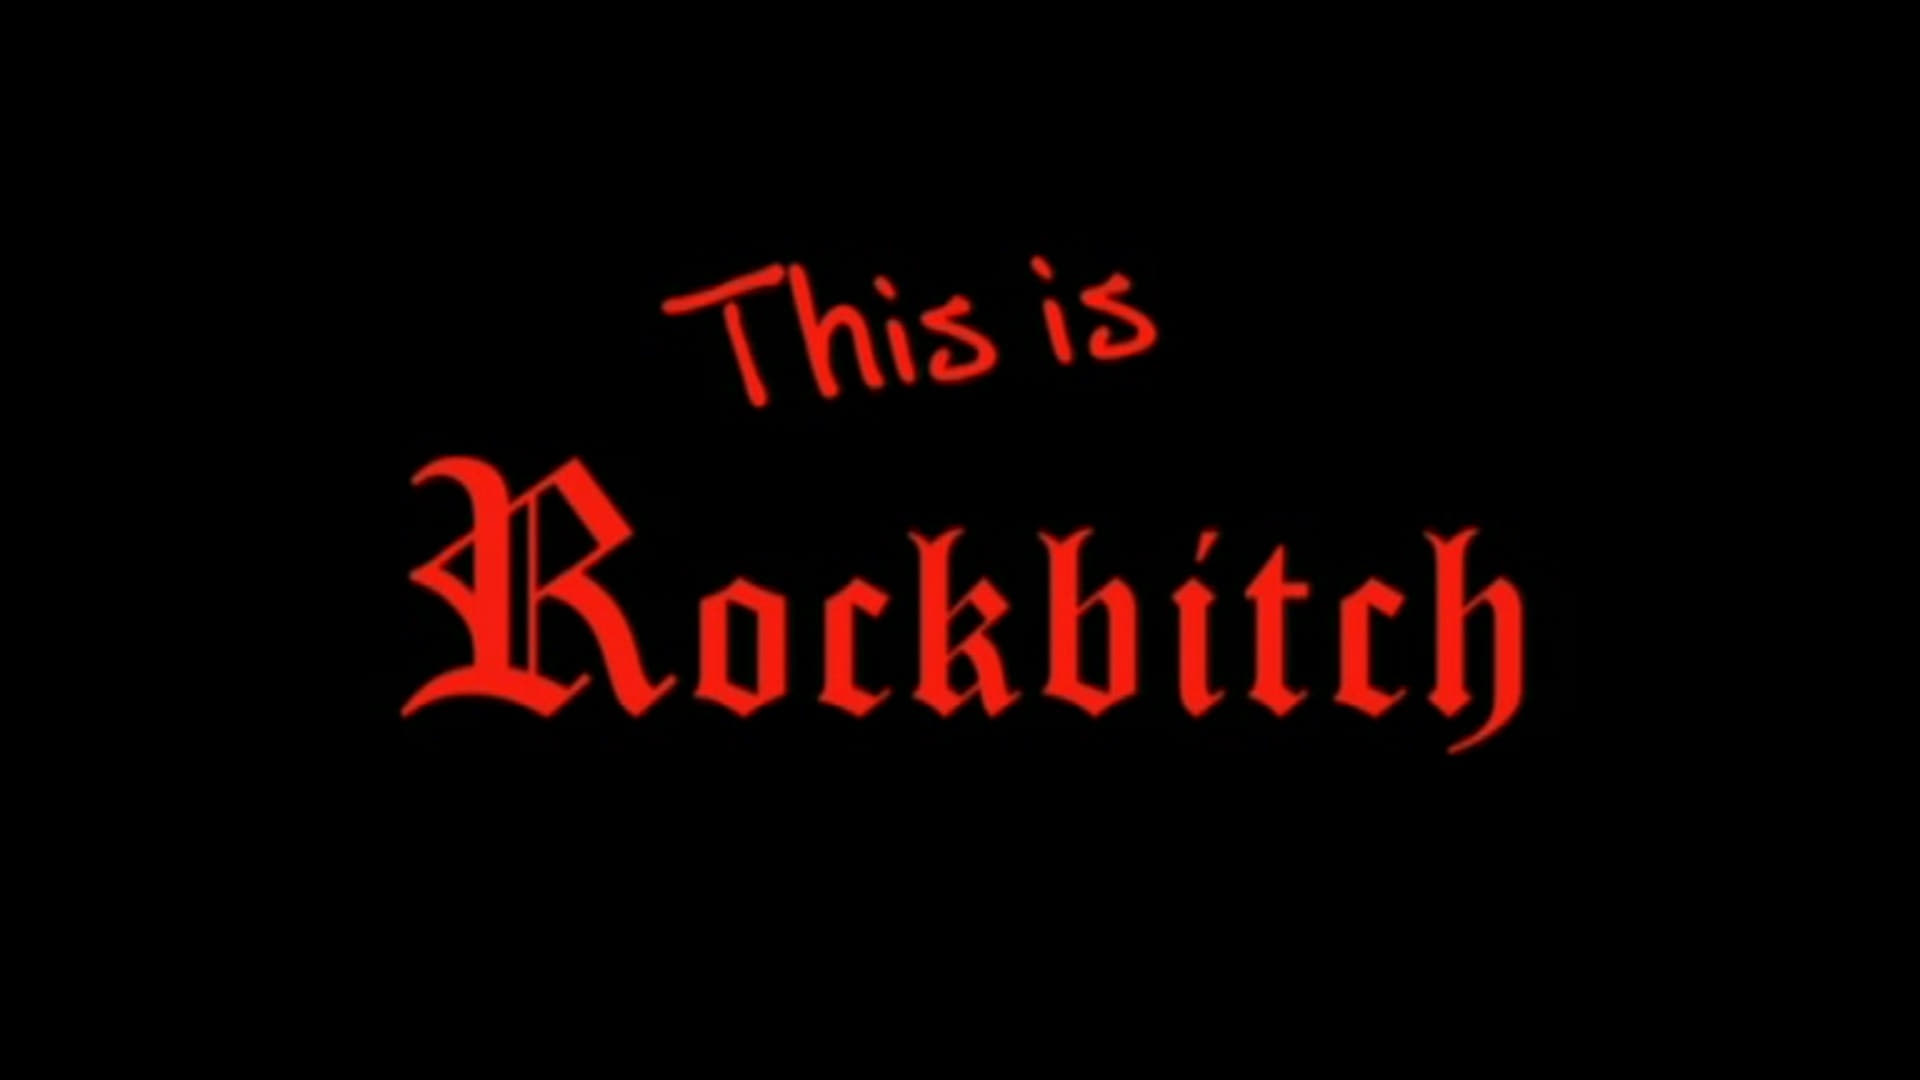 This Is Rockbitch